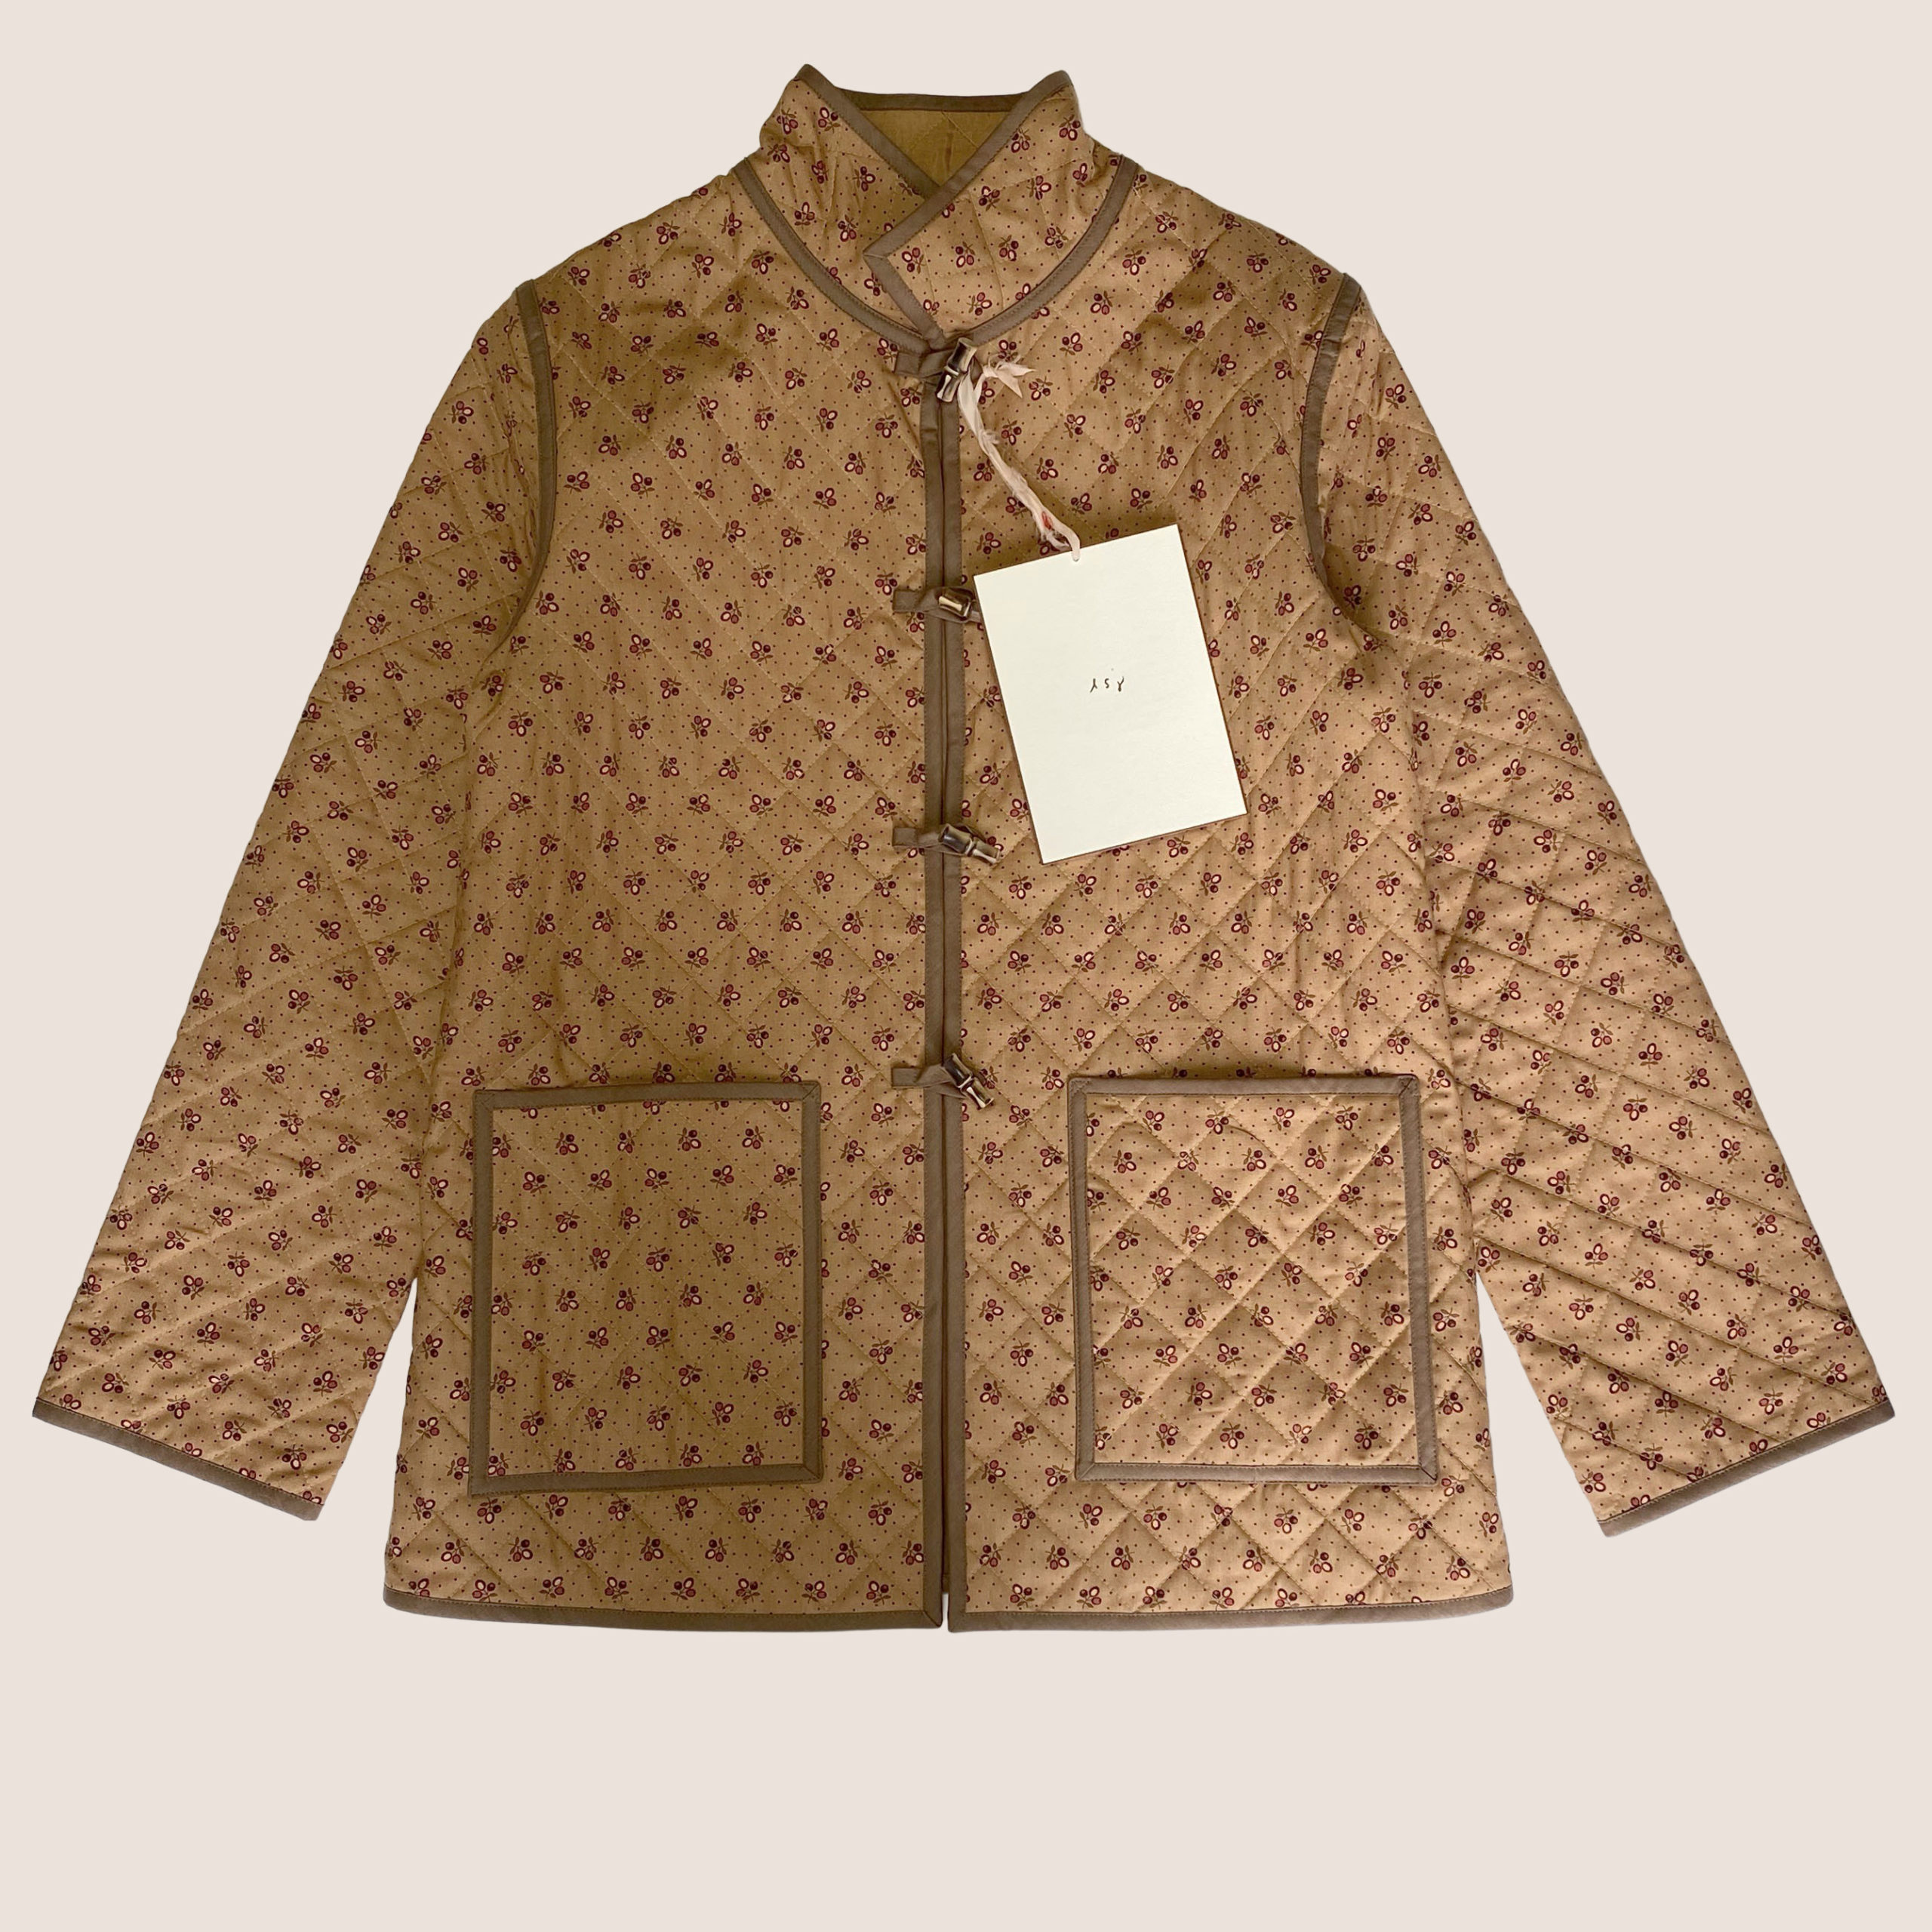 The Replica Quilt Jacket - Cherrywood